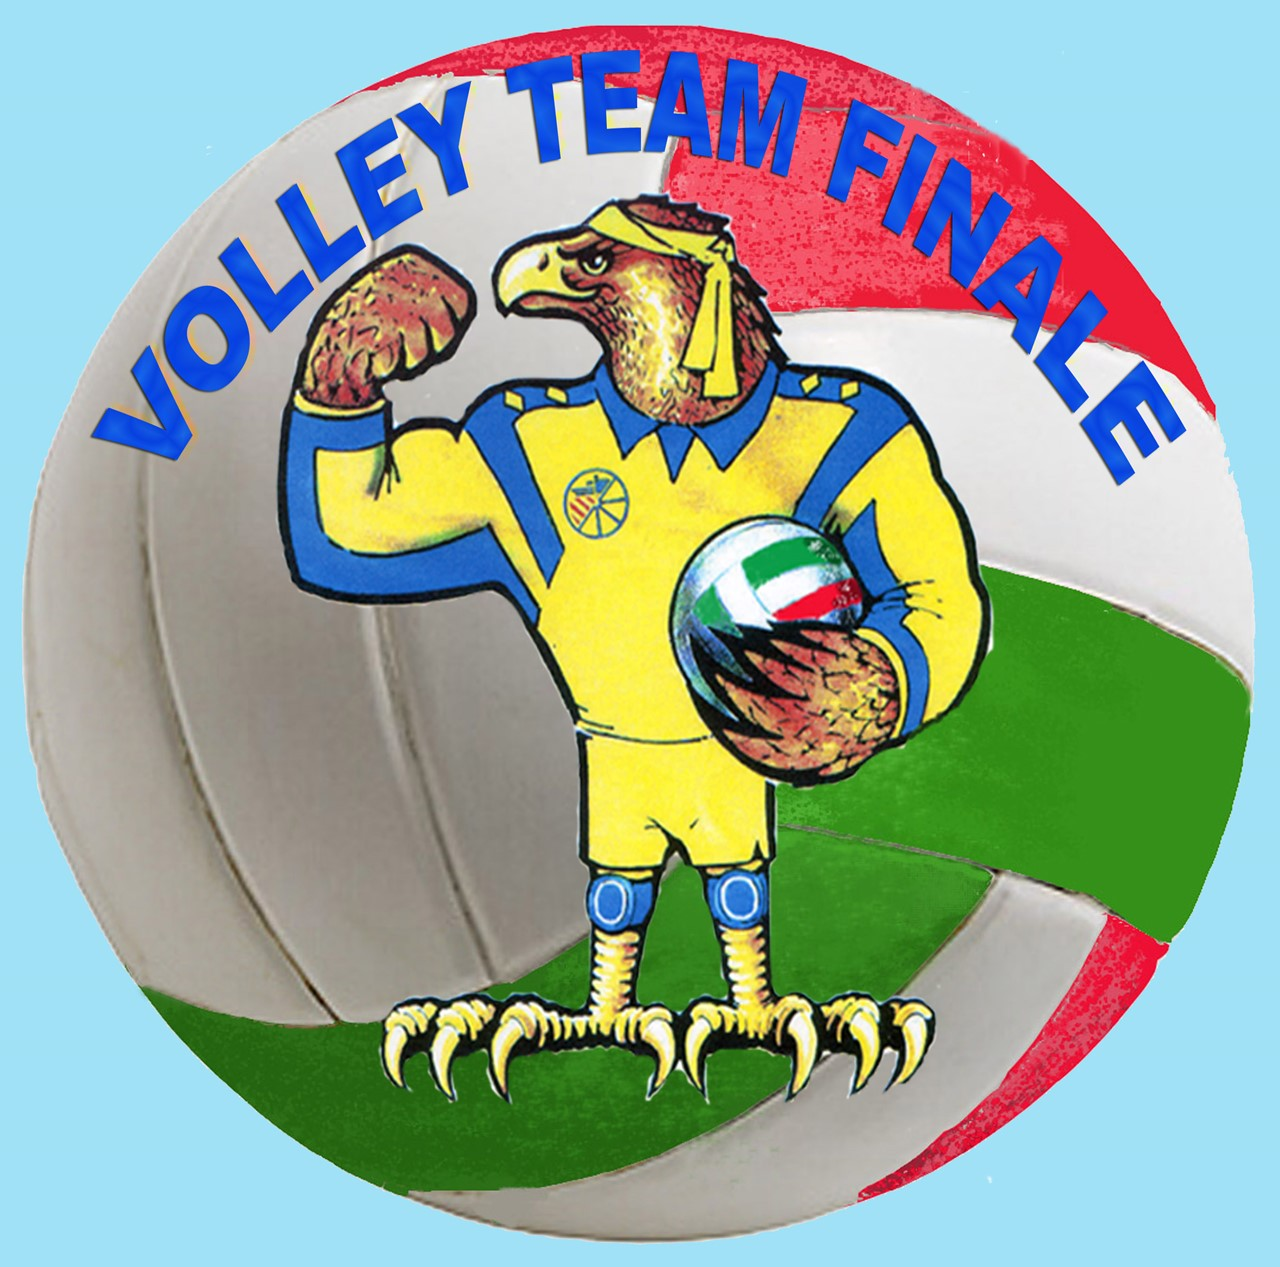 VOLLEY TEAM FINALE